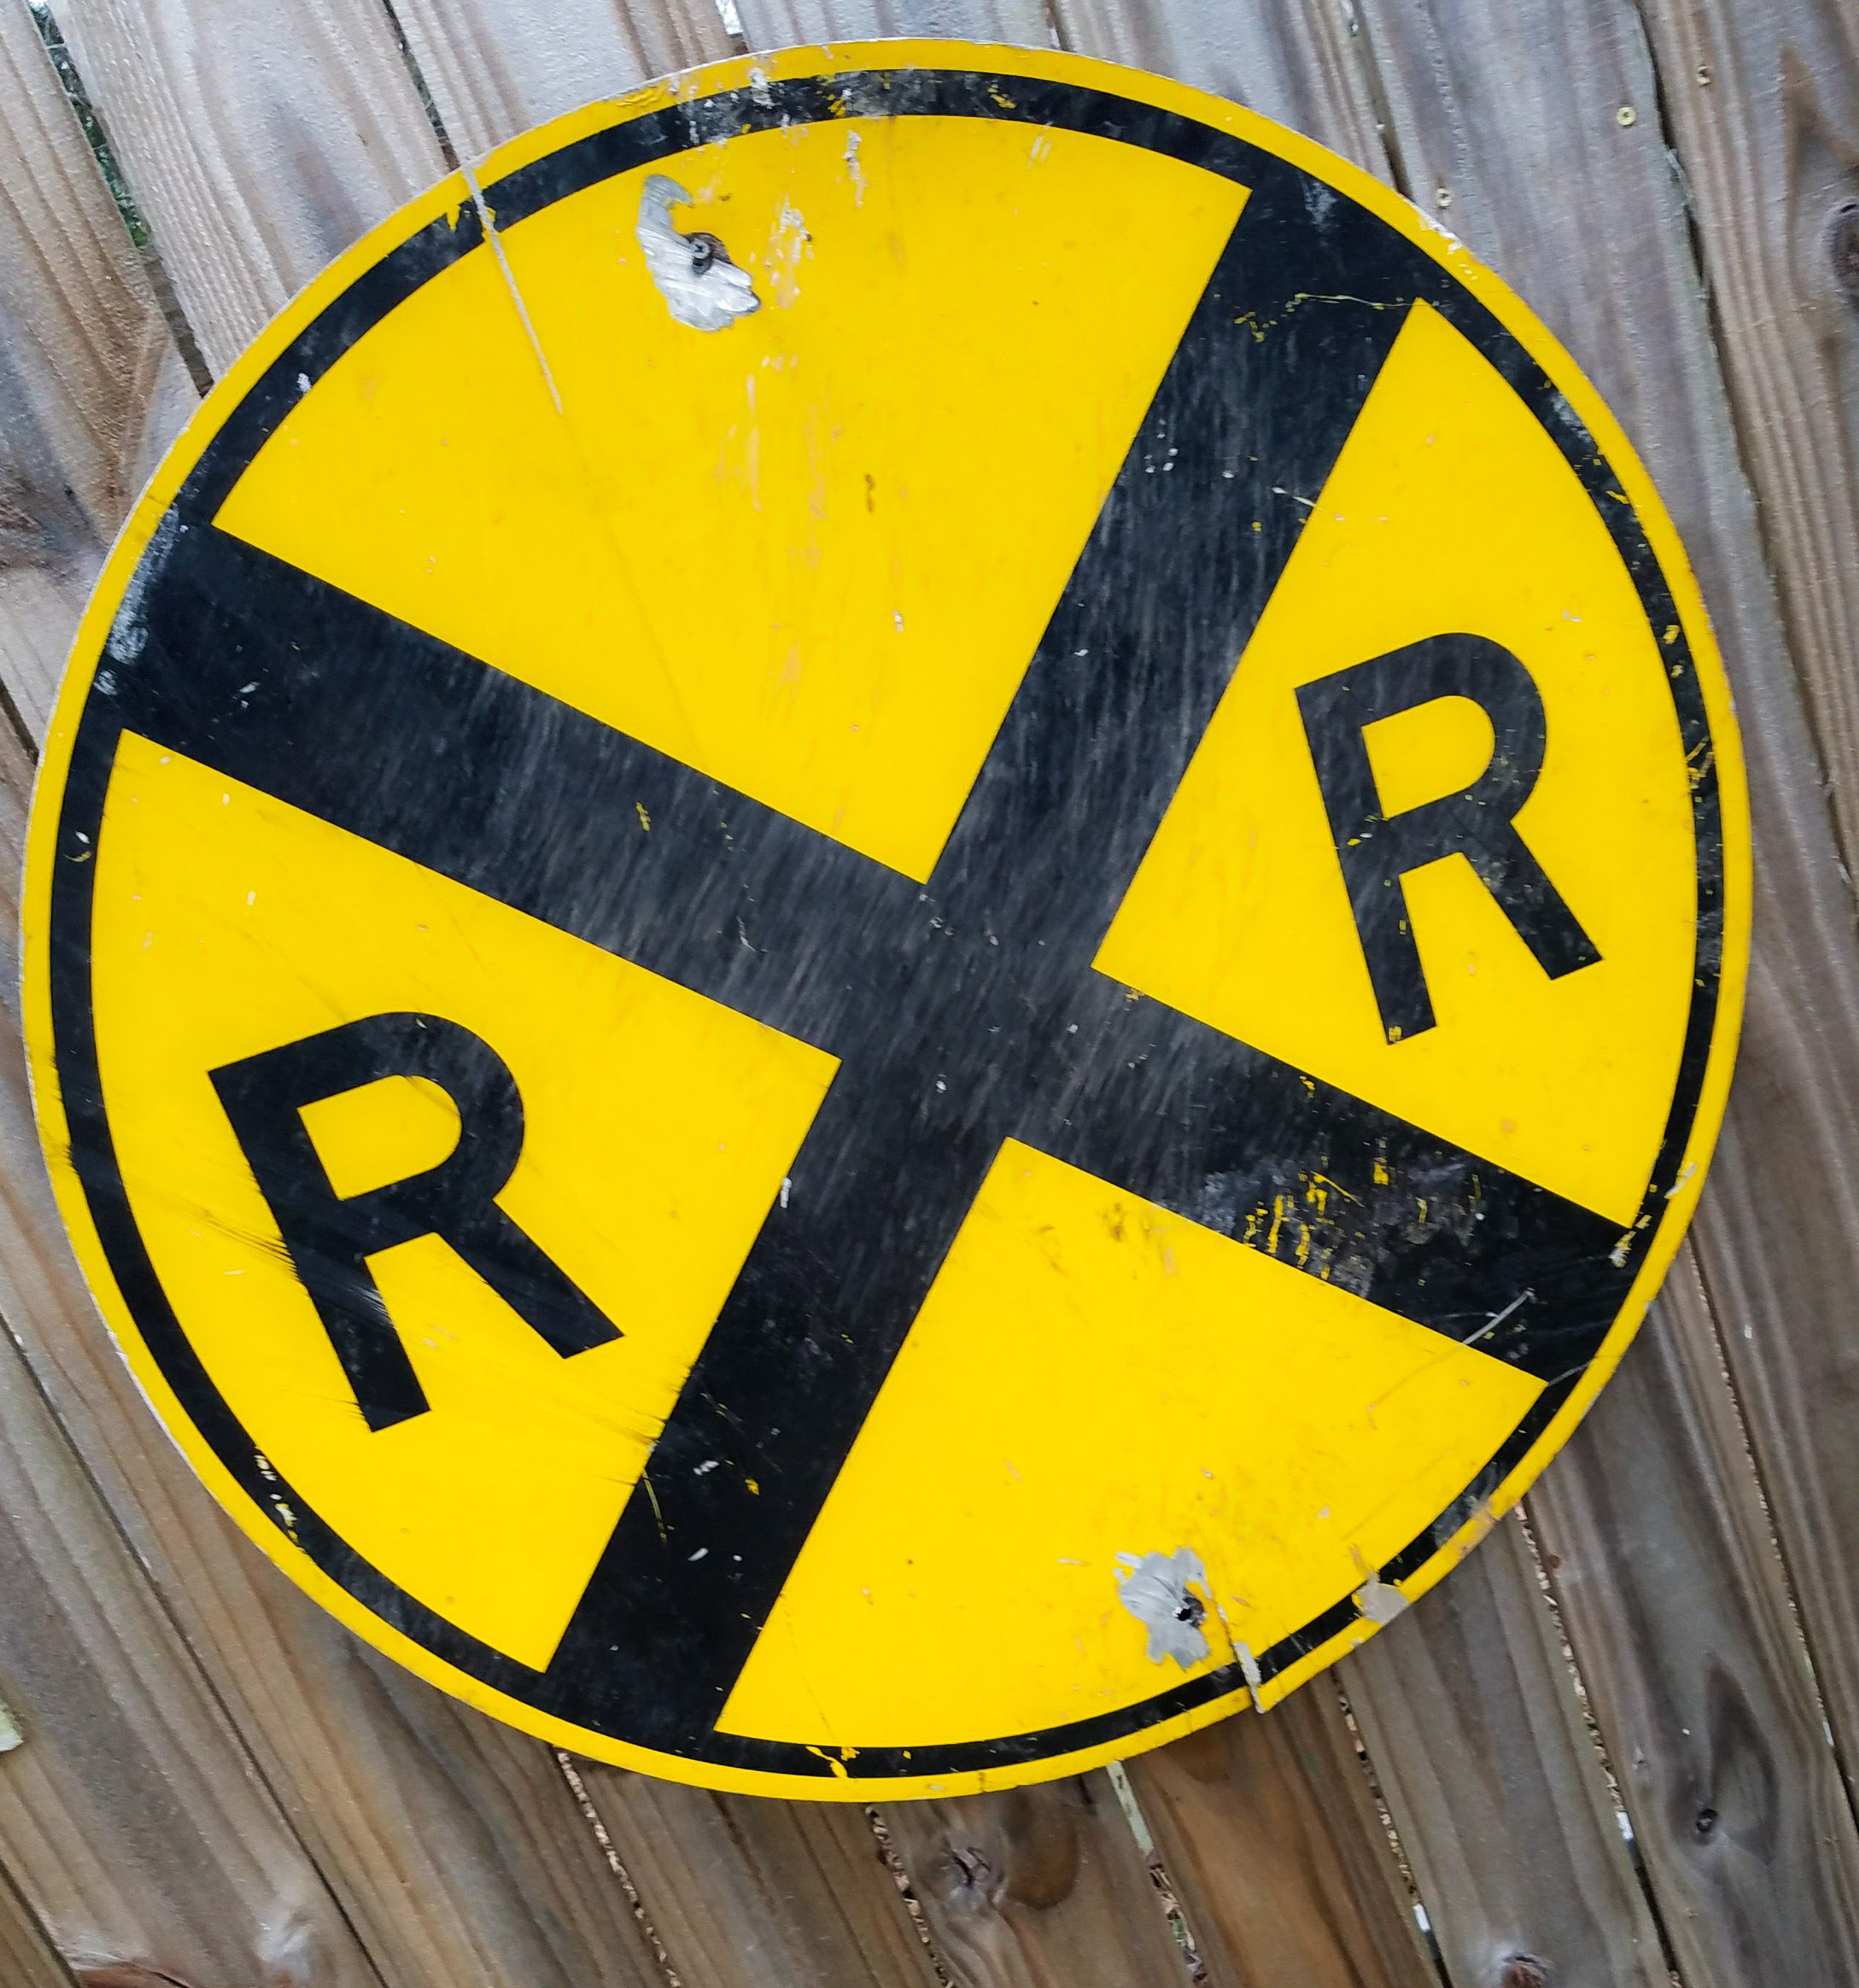 Buy a Hand Crafted Vintage Rail Road Crossing Sign, made to